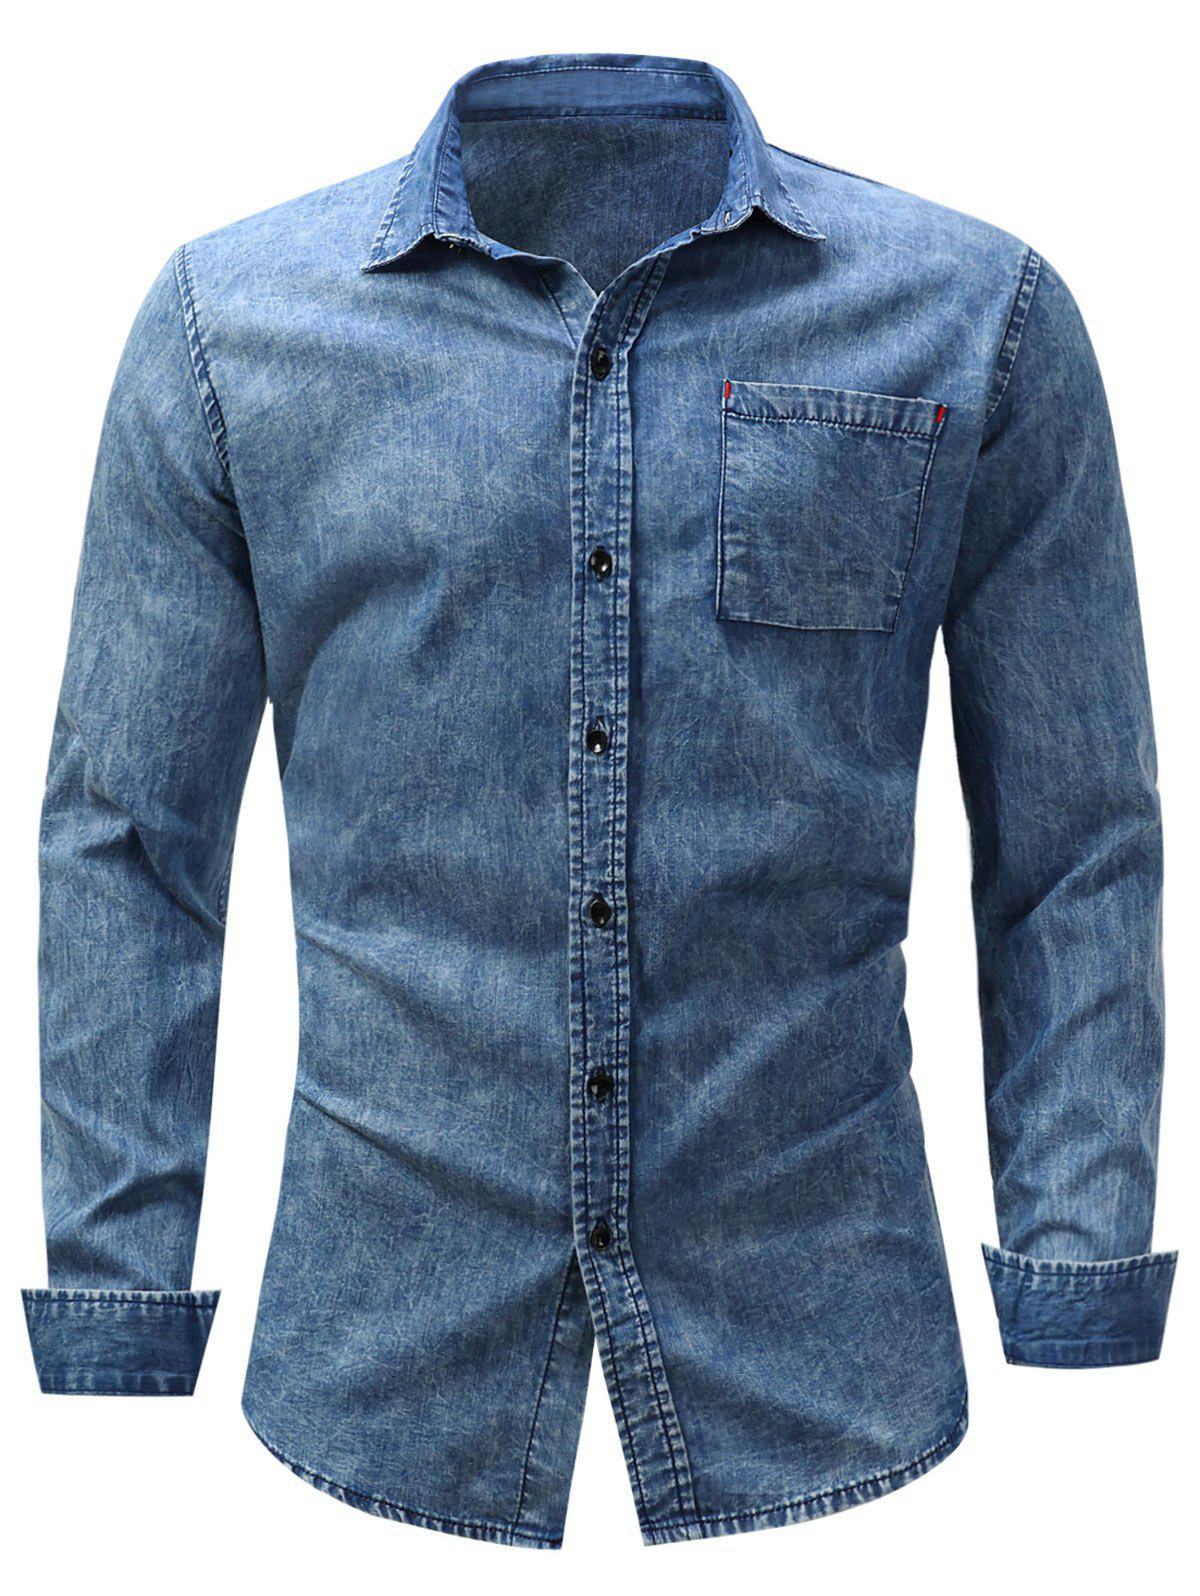 Pocket Bleached Effect Chambray ShirtMEN<br><br>Size: M; Color: DENIM BLUE; Shirts Type: Casual Shirts; Material: Cotton,Jean; Sleeve Length: Full; Collar: Turndown Collar; Pattern Type: Solid; Weight: 0.3400kg; Package Contents: 1 x Shirt;